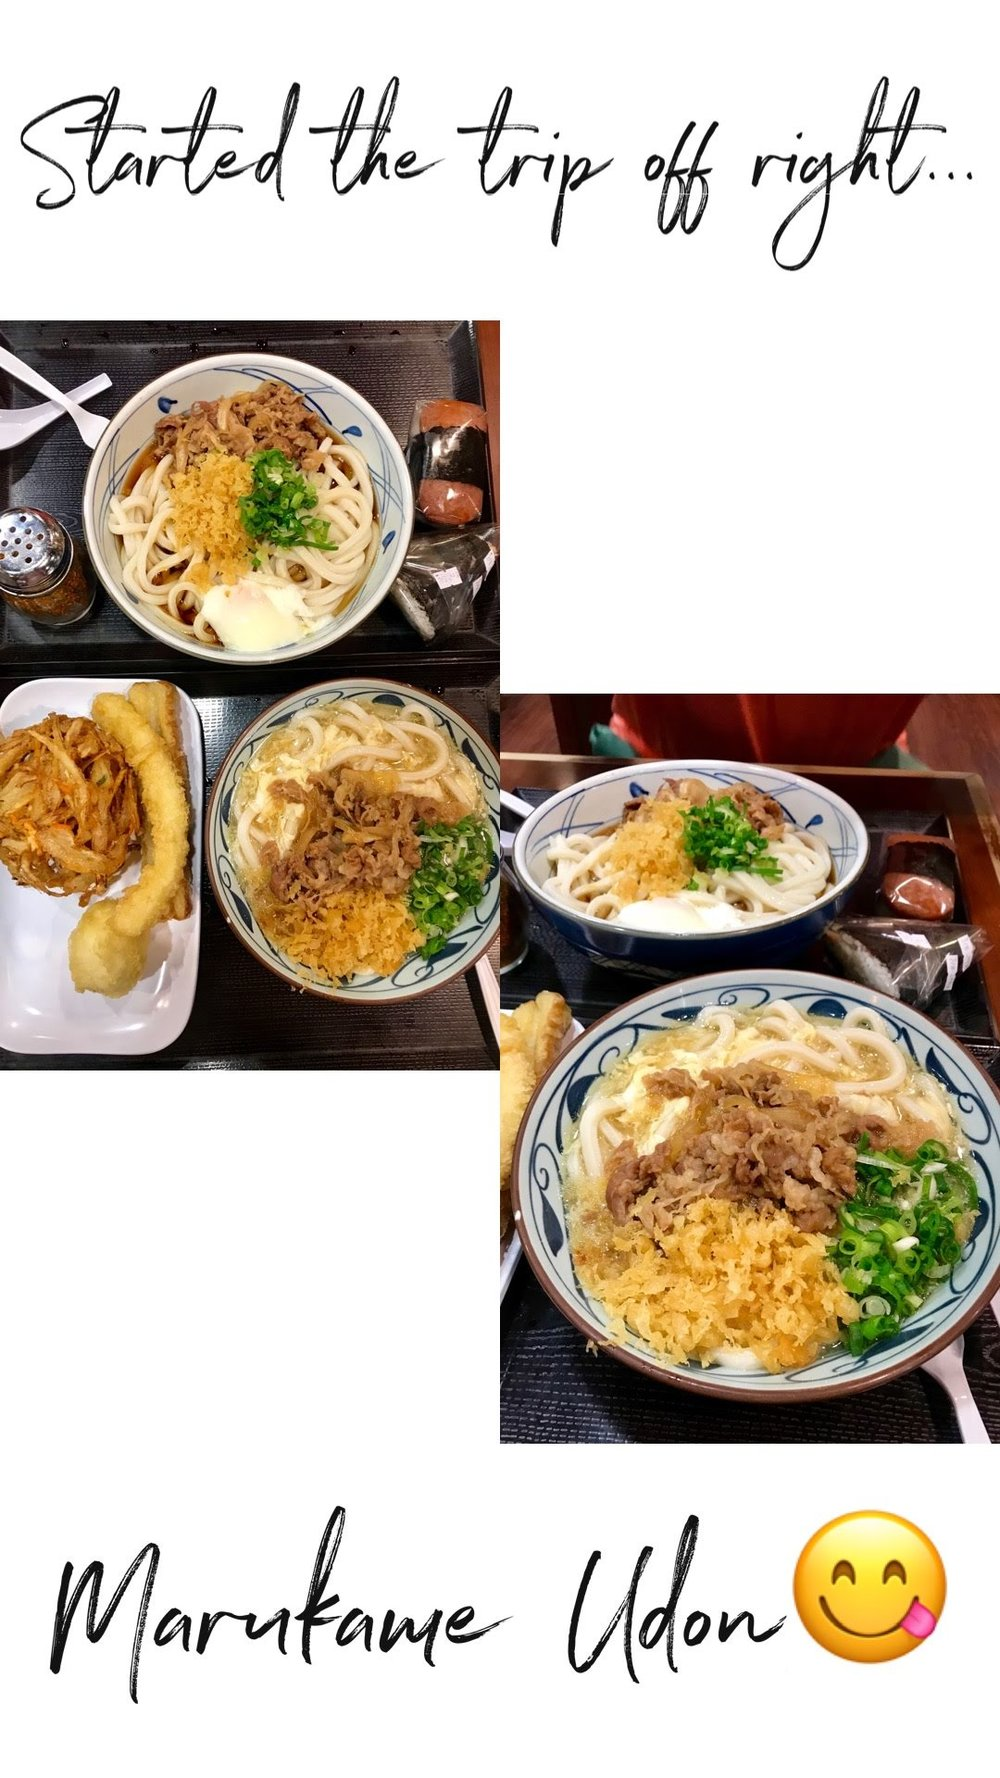 Marukame Udon - Yes we stood in a mile long line and yes it was worth it! We landed in Honolulu right around dinner time and this was our first stop! This is definitely a high tourist restaurant, as we ended up waiting about 45 minutes until we ordered our food. But the people we were in line next to were nice and talkative so it also felt like the waiting process wasn't as bad. Once we got in the restaurant to order it was like an assembly line. We also saw the udon noodles being prepared! After you order your soup there's tons of tempura options and we went a little overboard. I ordered the egg broth beef udon and it was so so good! The perfect amount of spice and flavor, highly recommend!